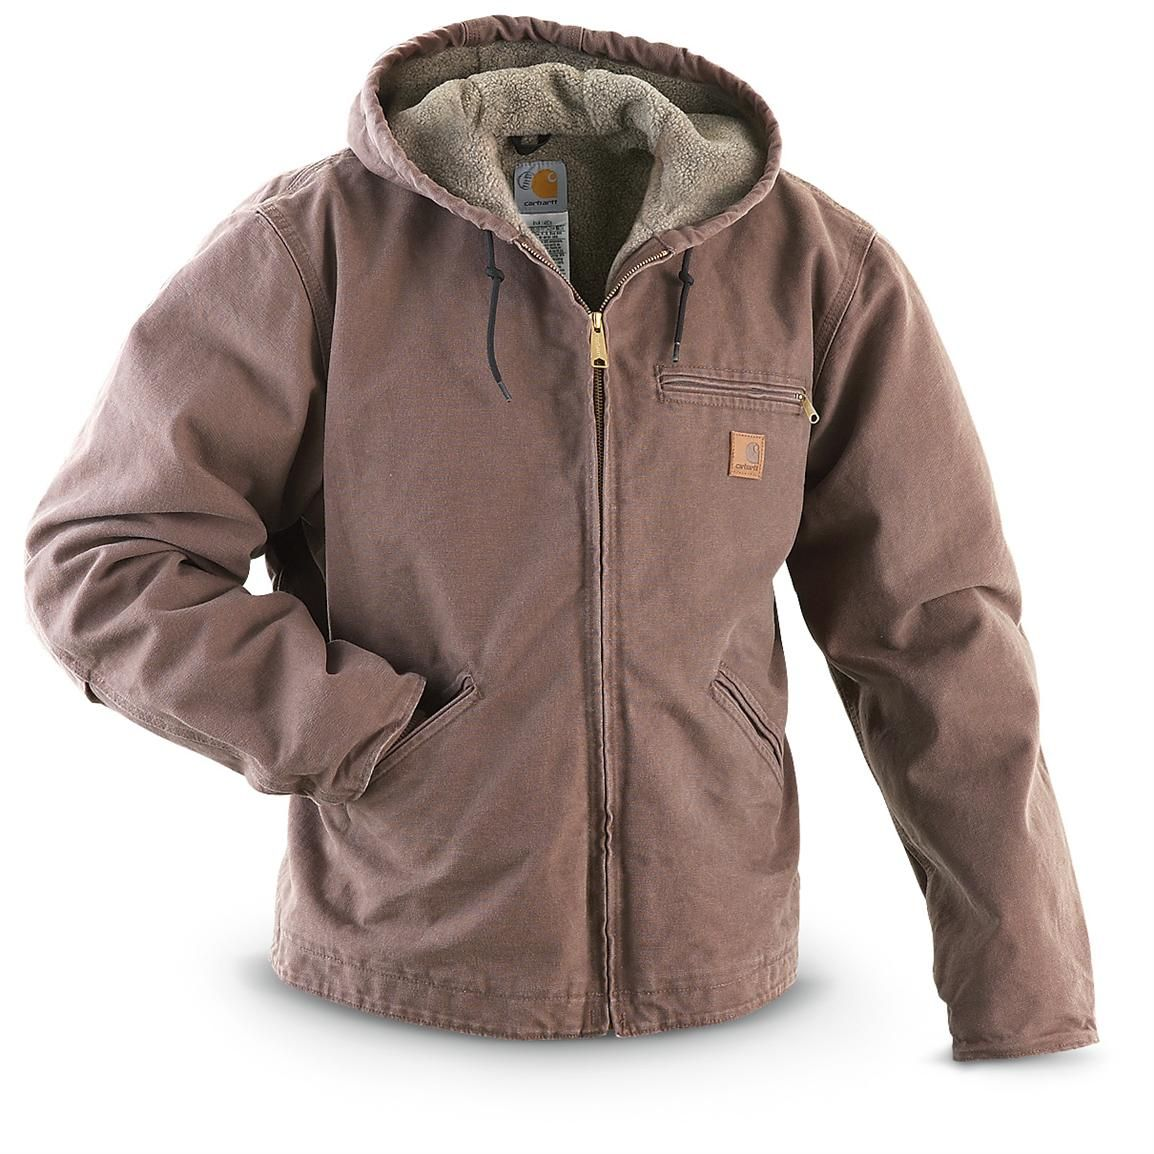 Carhartt® Hooded Sandstone Sierra Jacket. Serious warmth for a serious  savings of BIG BUCKS